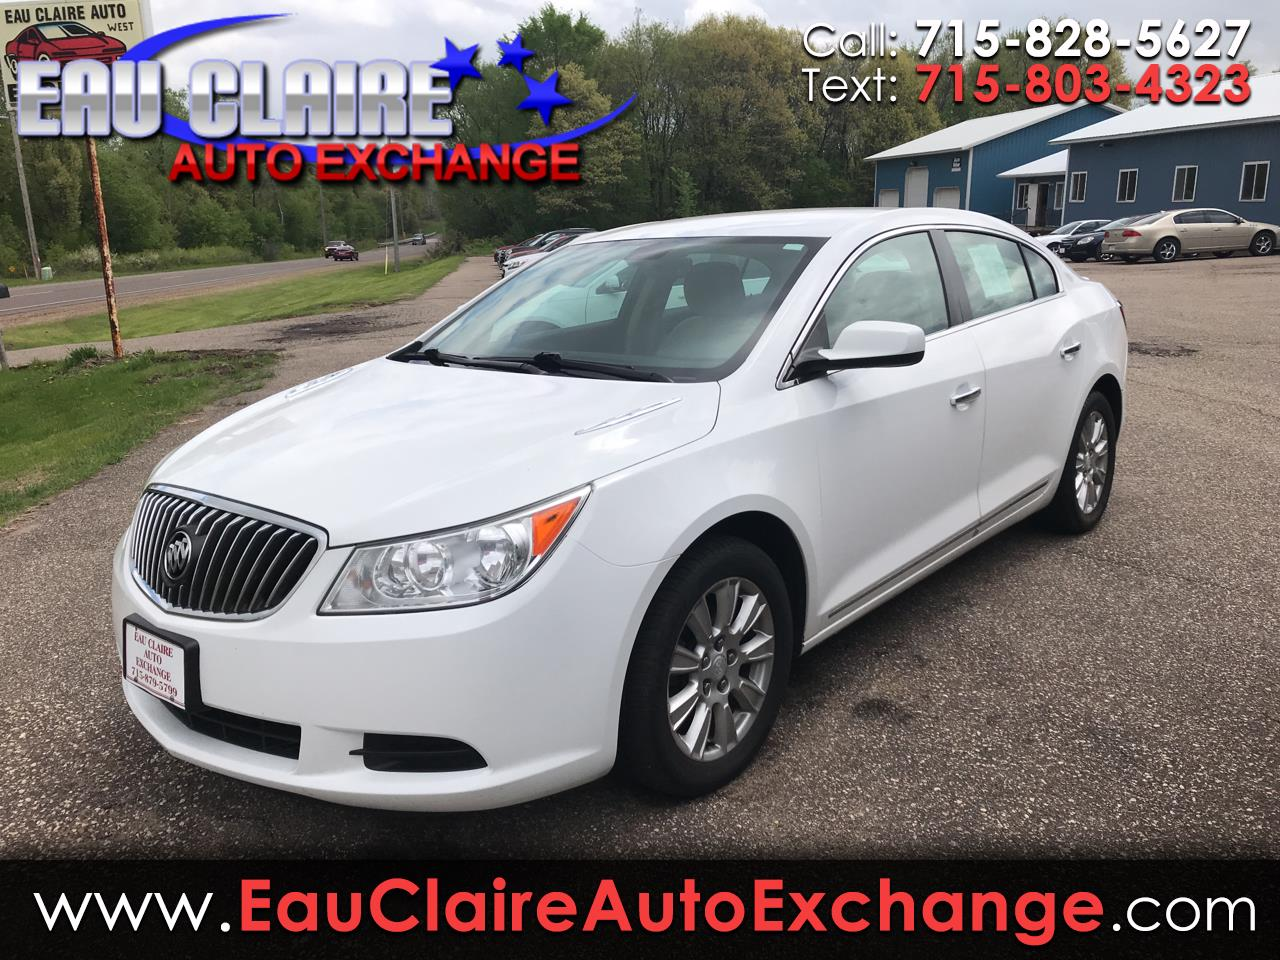 2013 Buick LaCrosse 4dr Sdn Base FWD